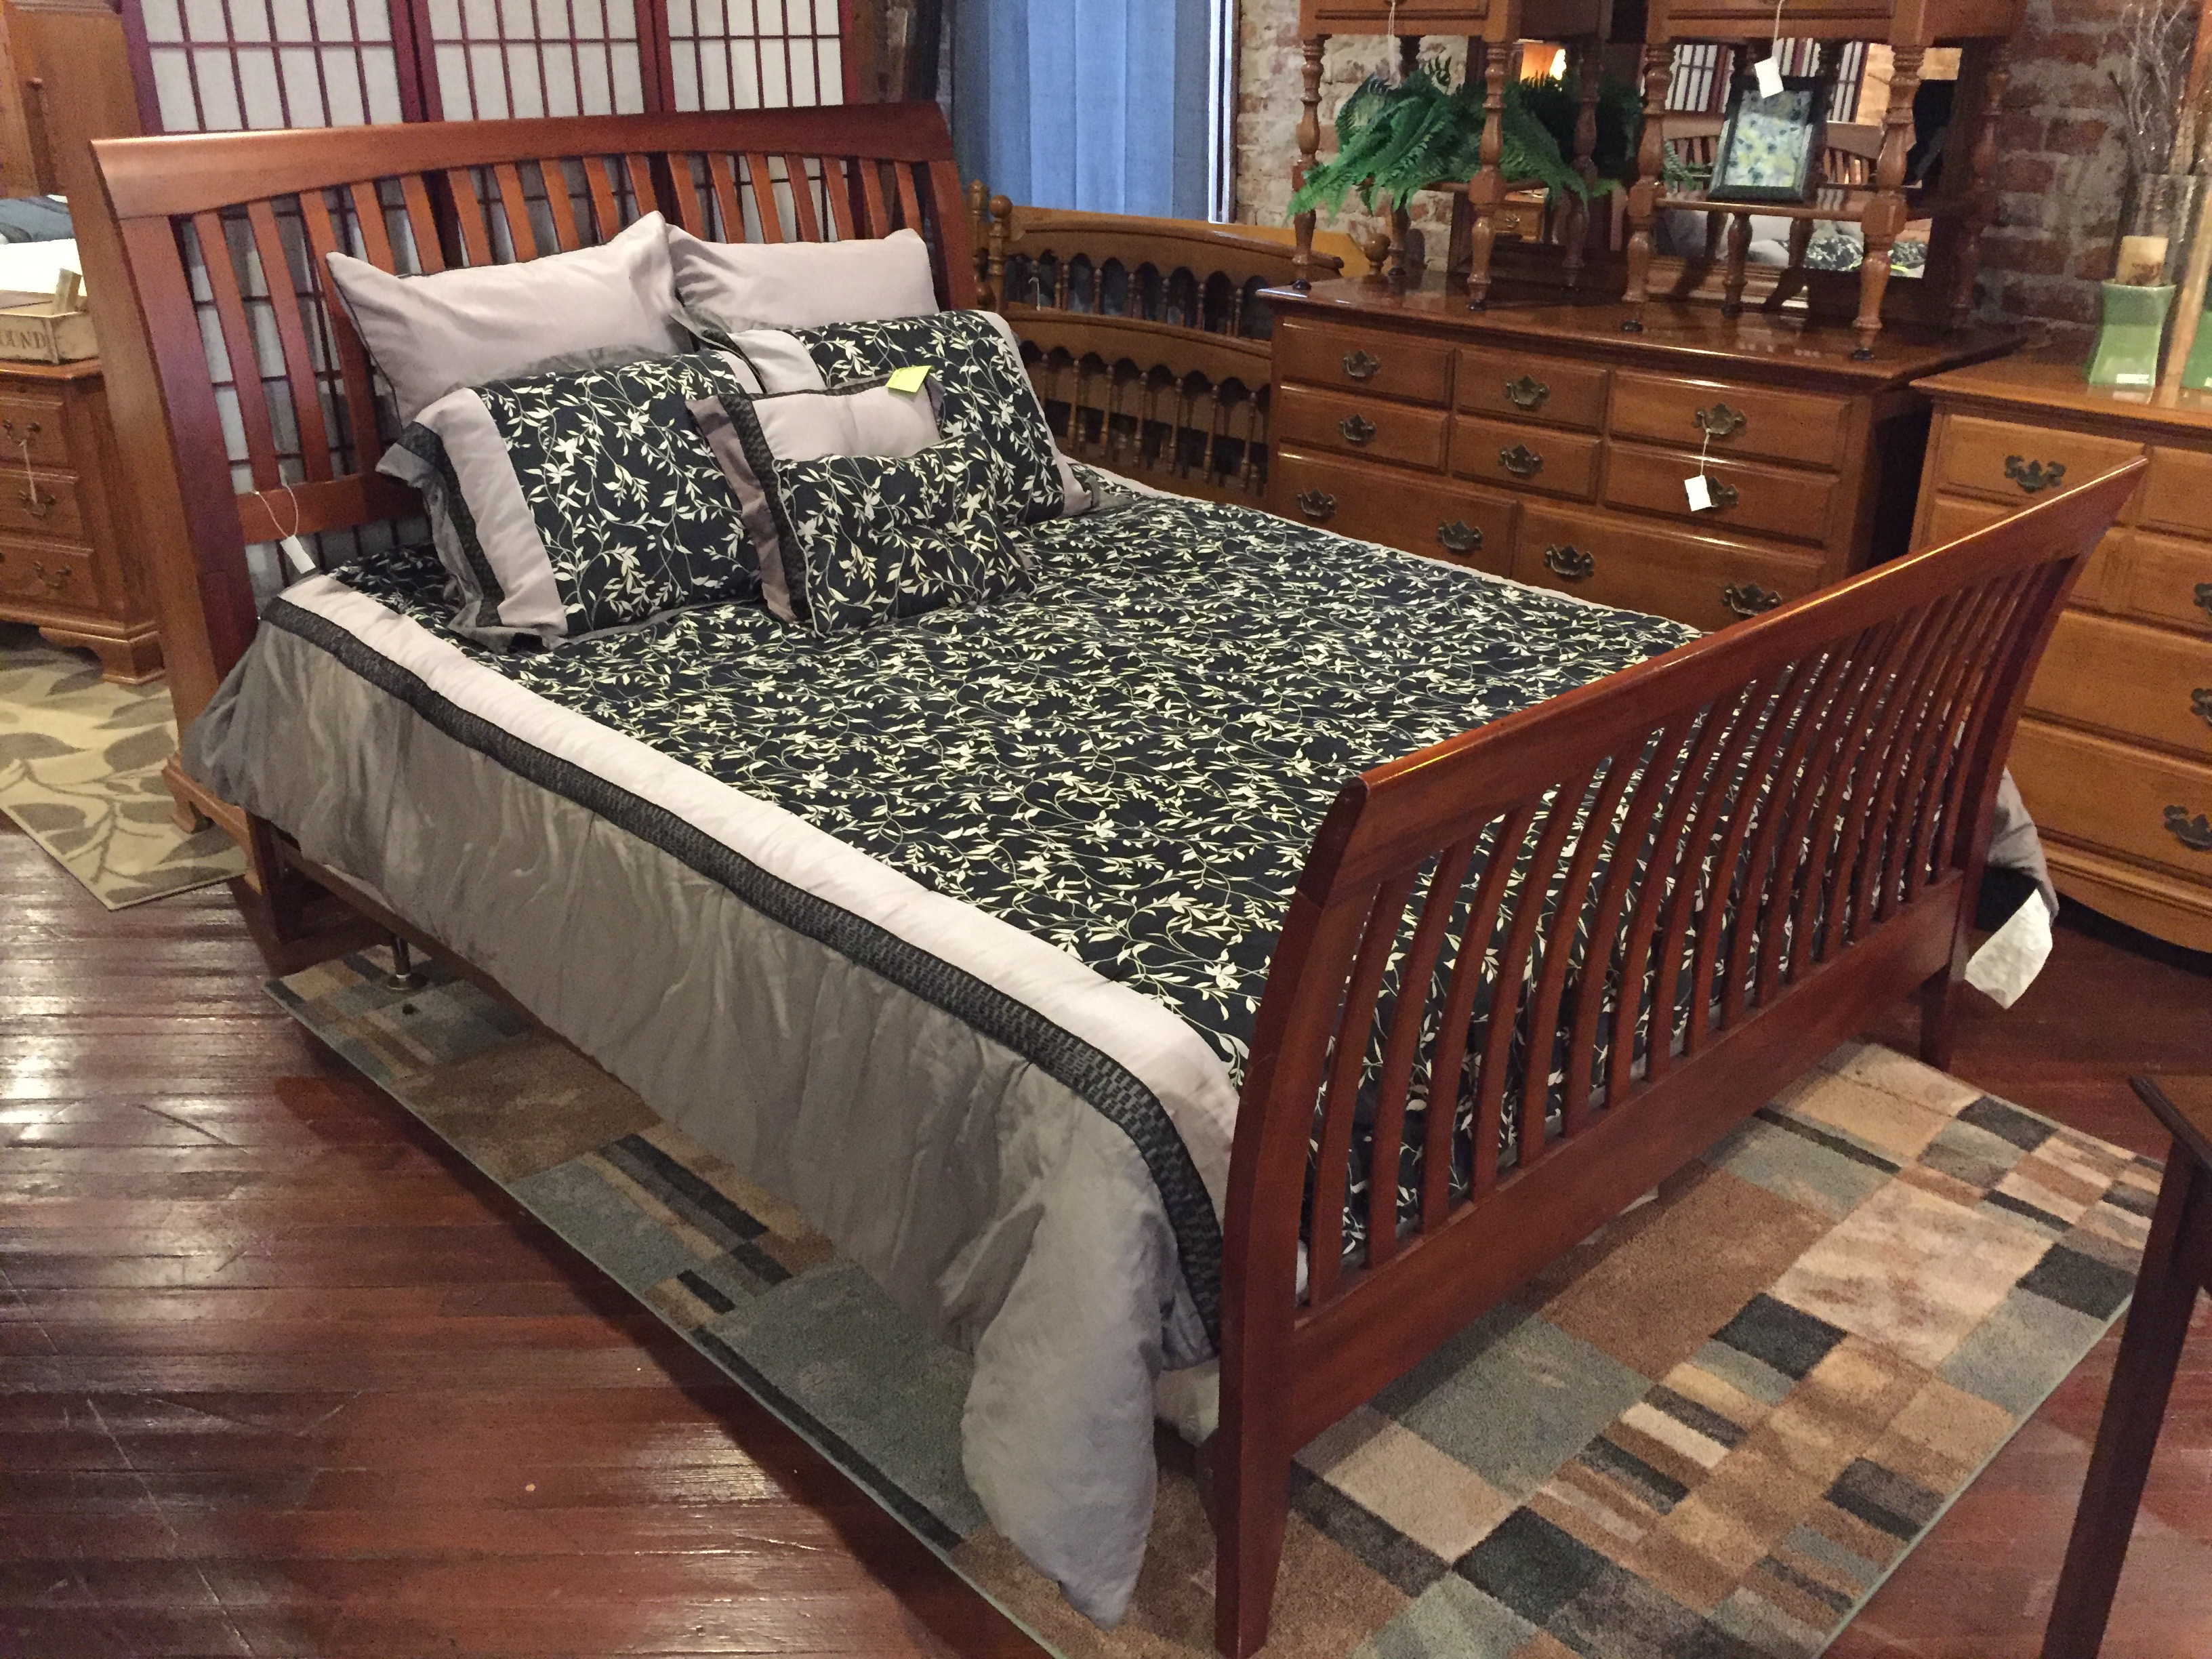 CHERRY FINISH SLAT QUEEN BED